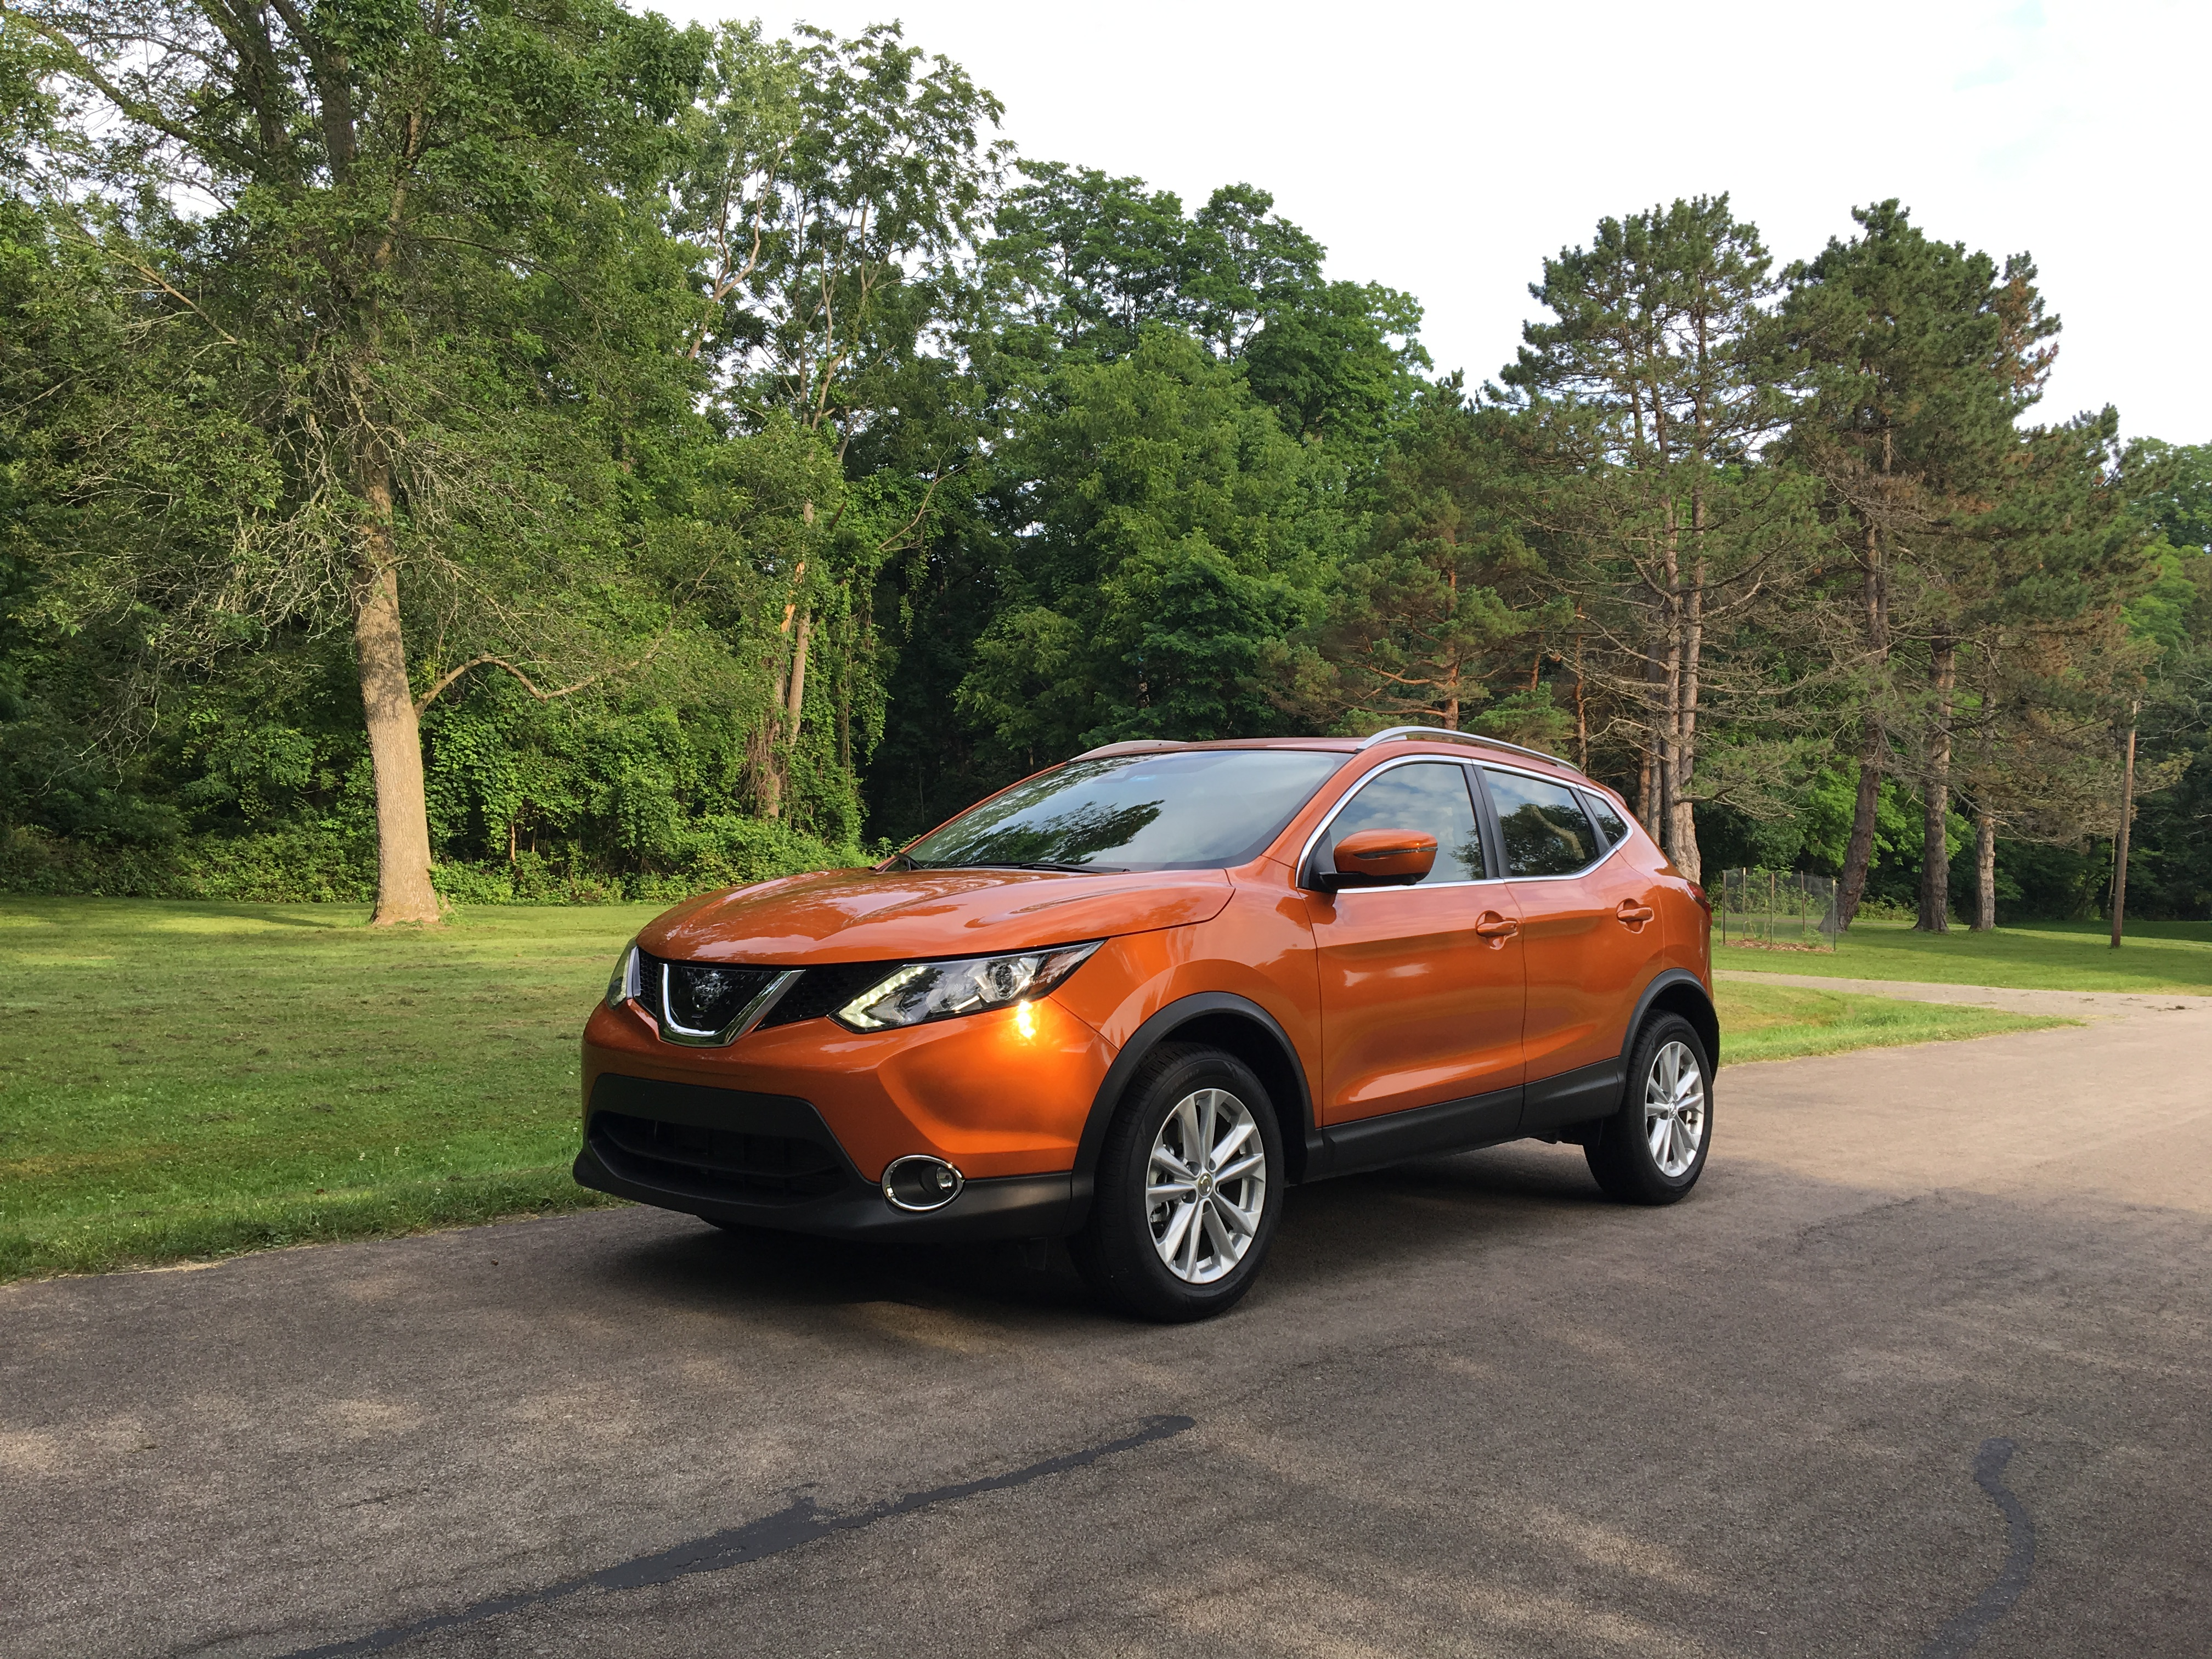 drive awd sl rogue sport review nissan to fit the test shrink platinum